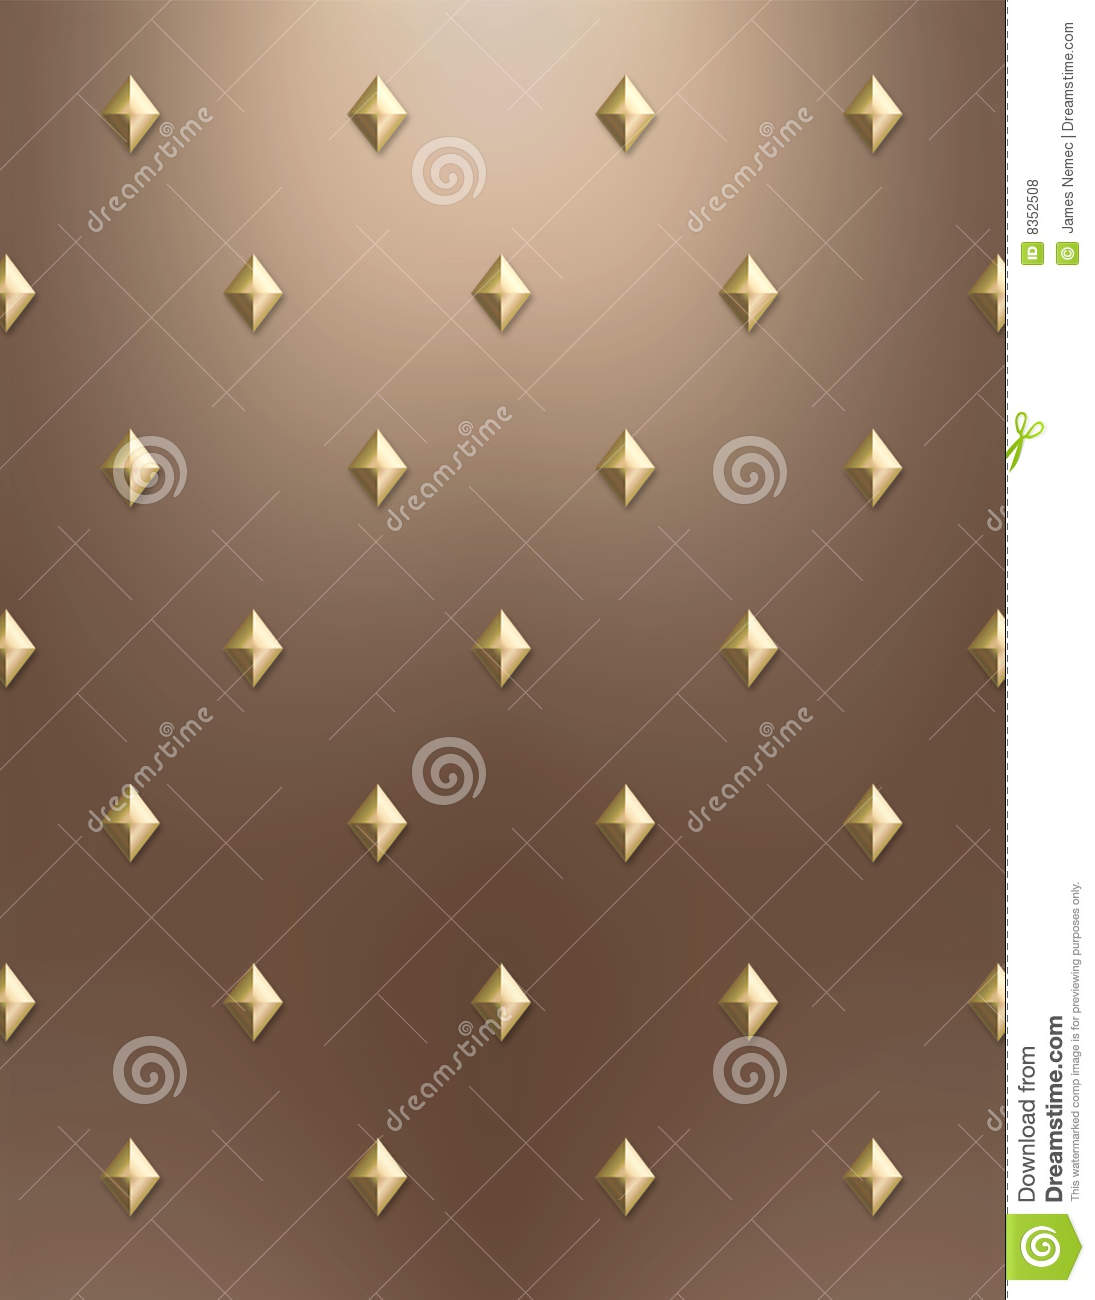 Gold Amp Copper Diamond Background Royalty Free Stock Photos